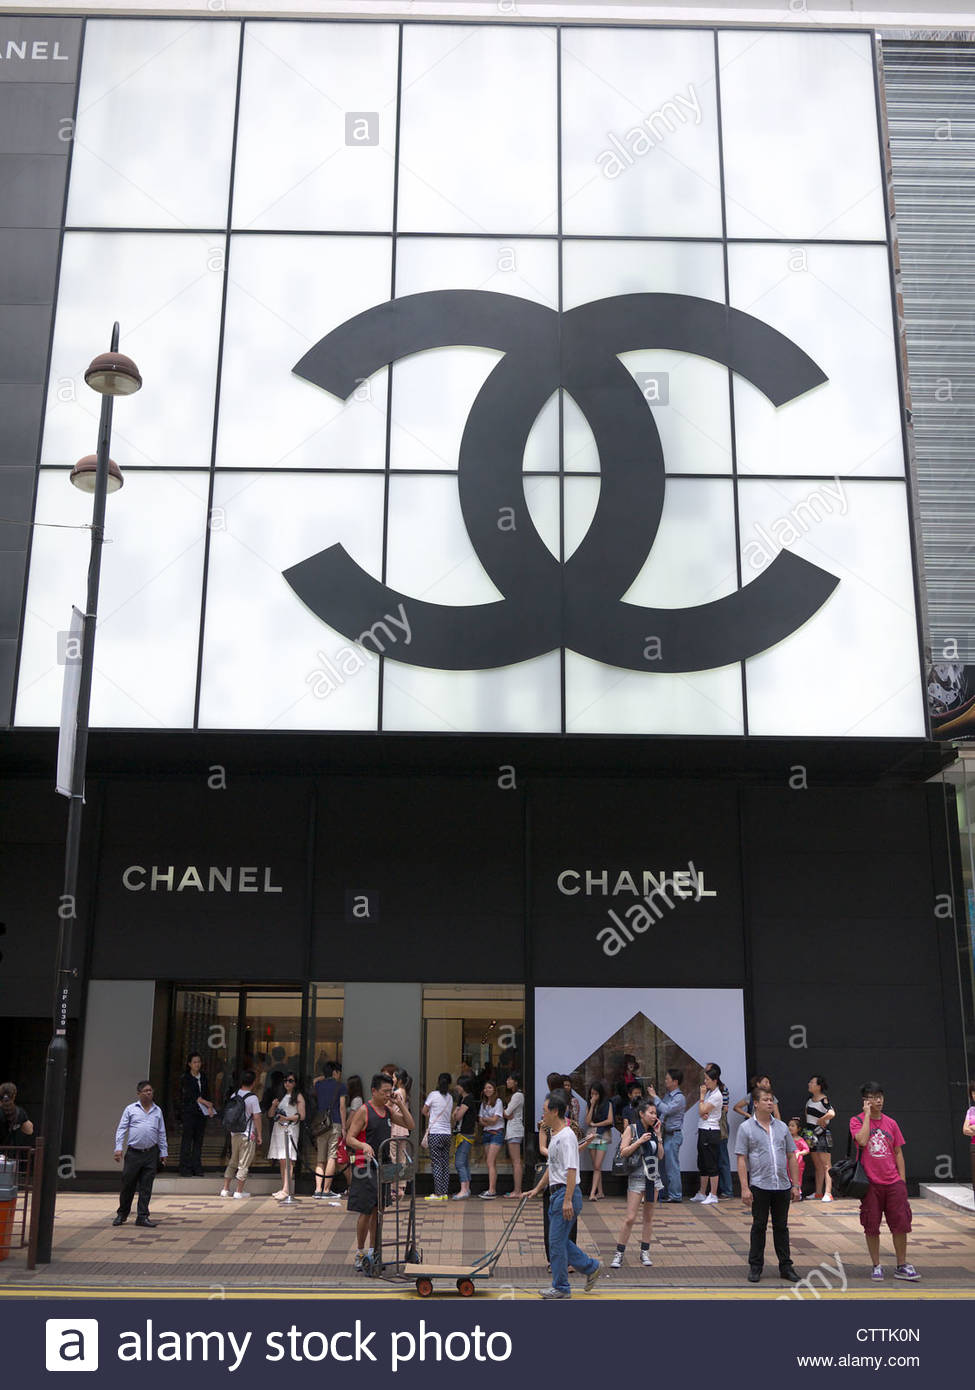 A Chanel designer shop in  Hong Kong - Stock Image